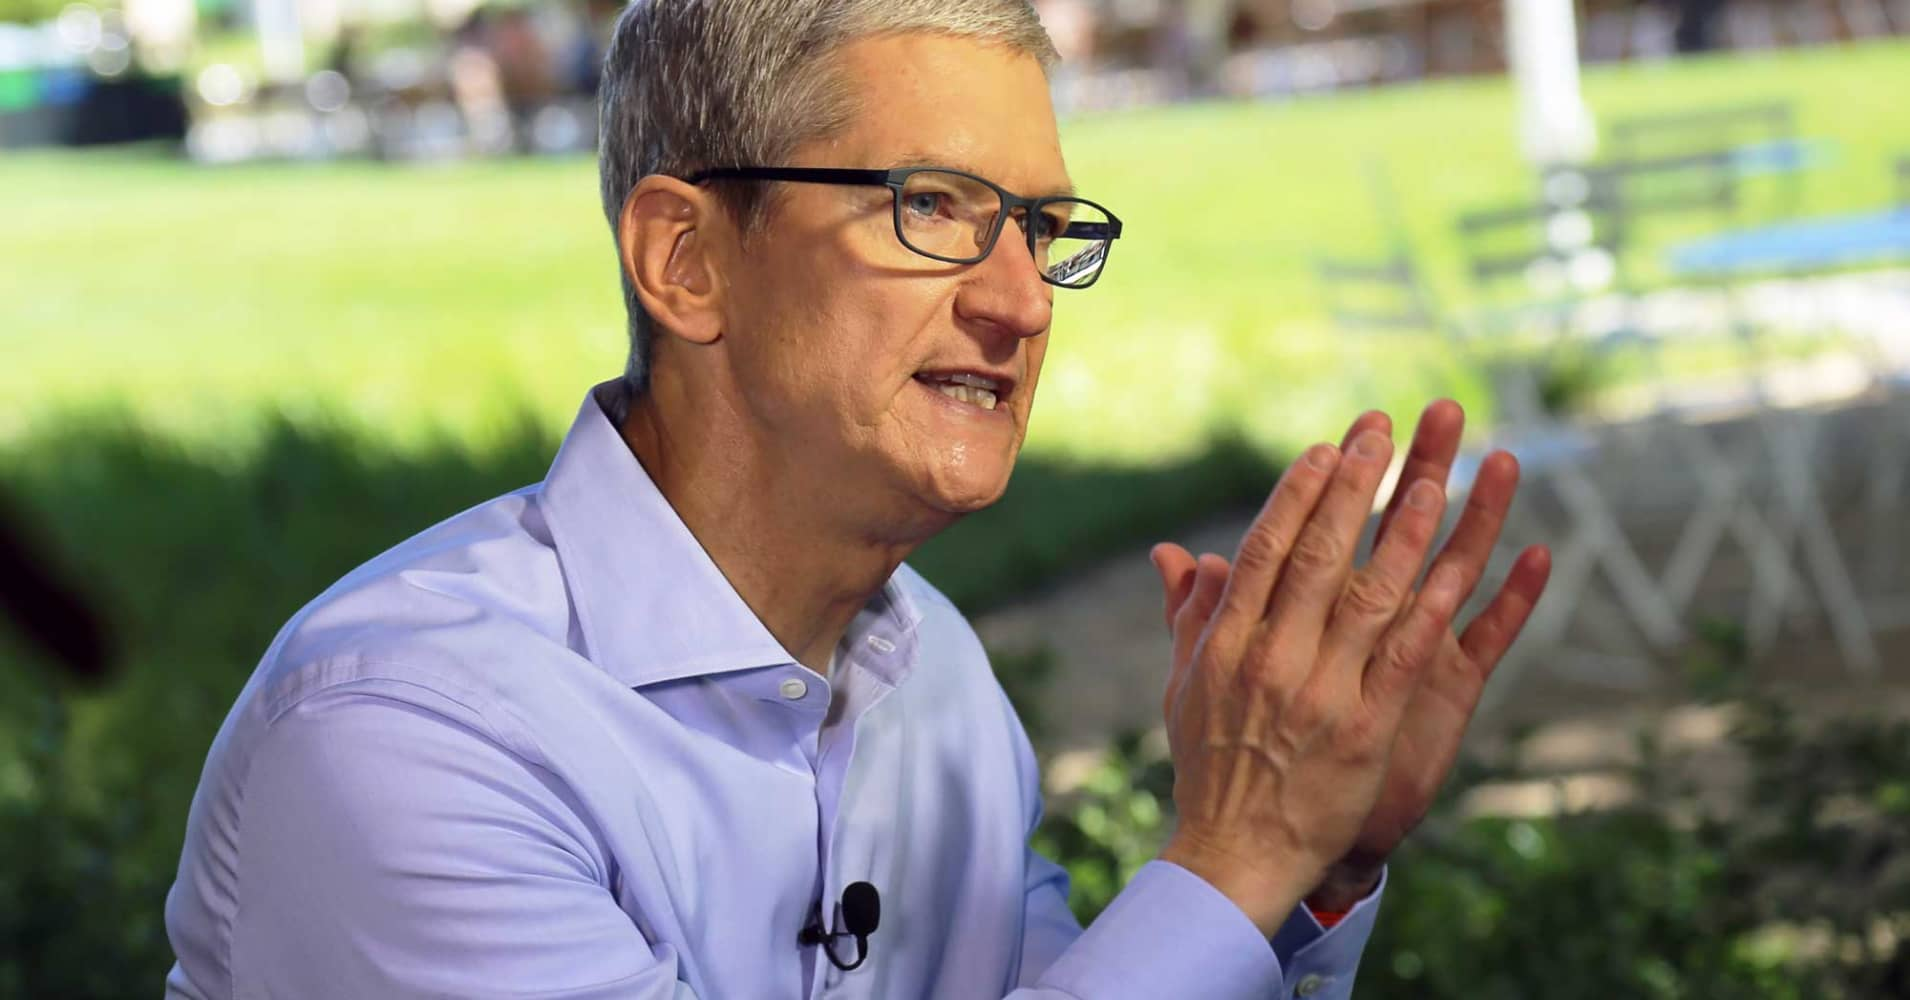 Apple faces these technical roadblocks in the comedown from earnings euphoria